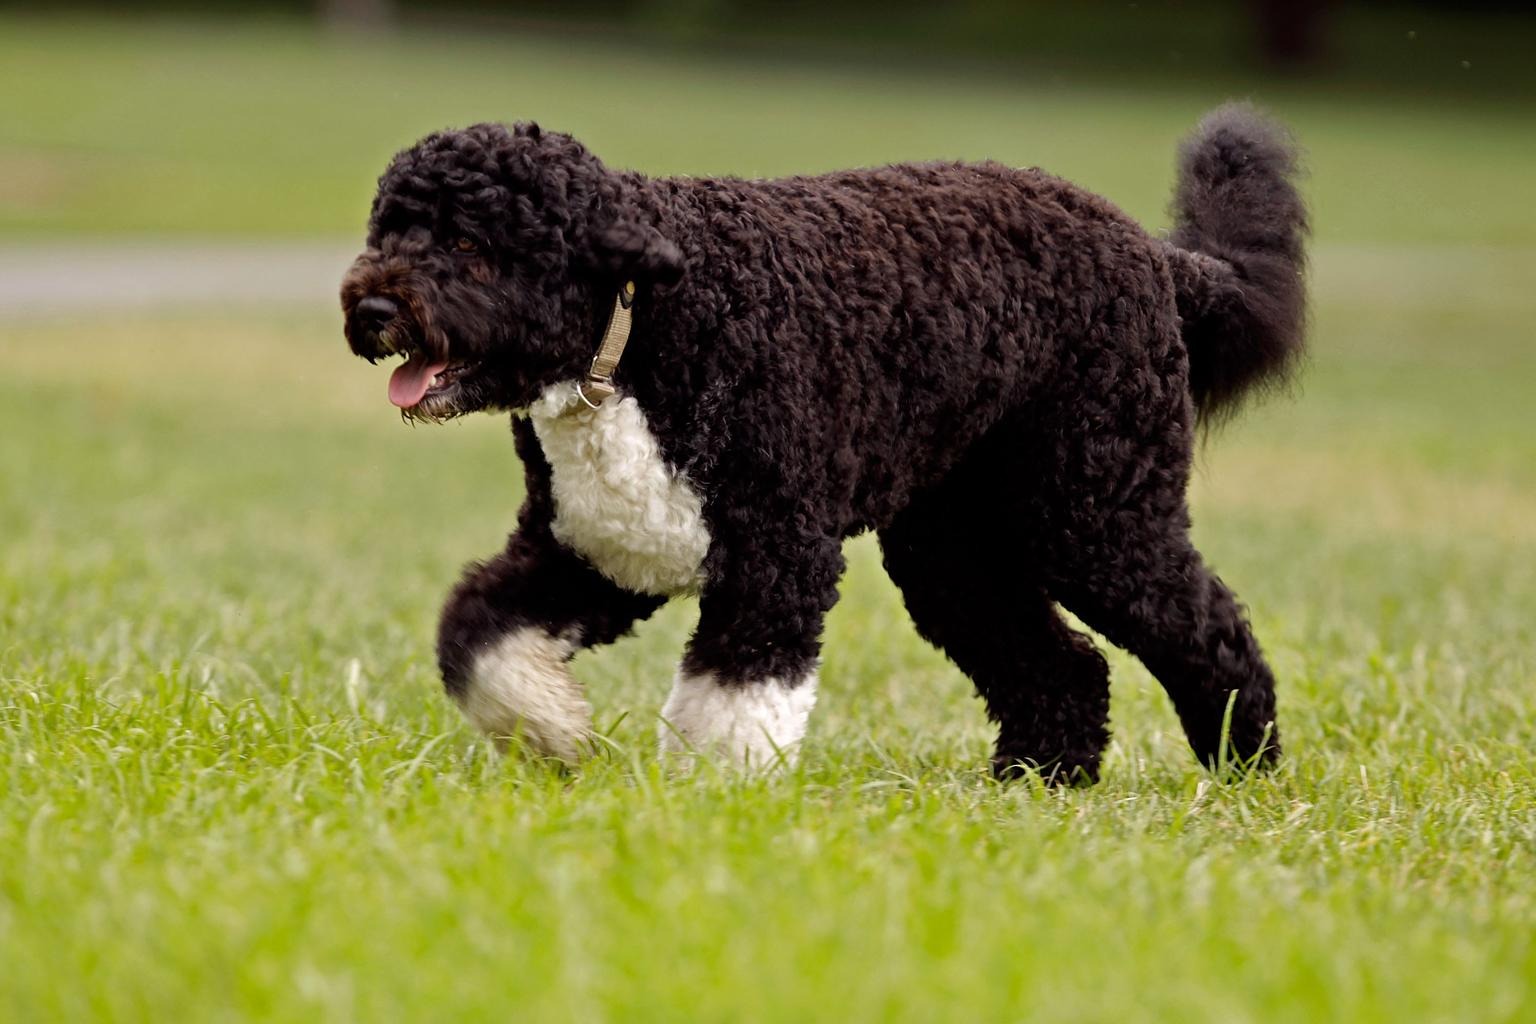 The Obama family dog, a Portuguese water dog named Bo, trots across the South Lawn August 2, 2010 in Washington, DC. Bo was out for a walk before President Barack Obama left the White House to travel to Atlanta, Georgia, where he will address the Disabled American Veterans convention about the ongoing wars in Iraq and Afghanistan. (Photo by Chip Somodevilla/Getty Images)